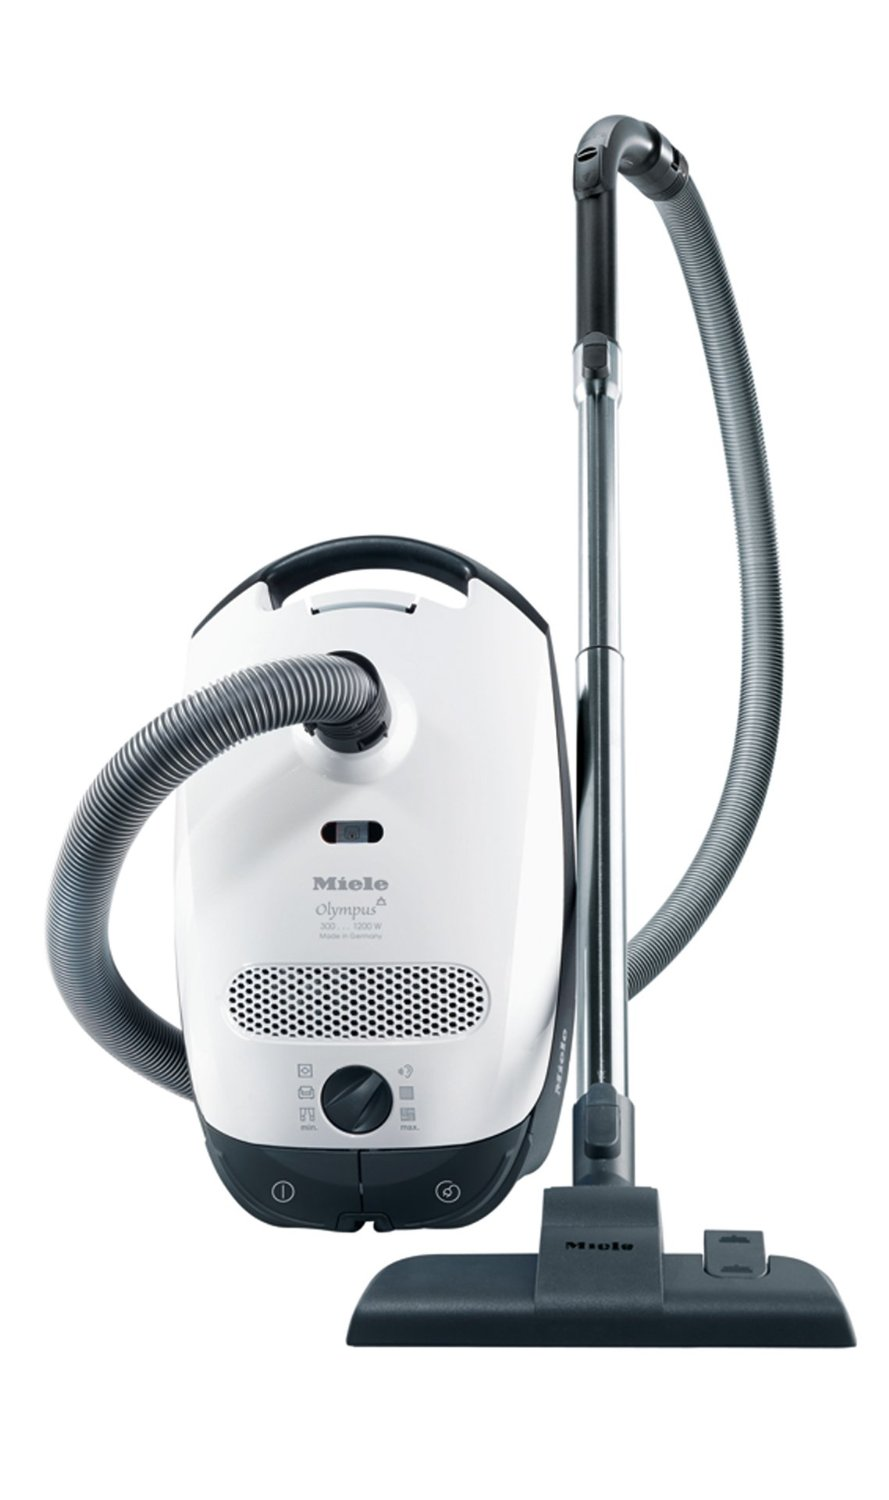 Miele S2121 Olympus Canister Vacuum Cleaner Review